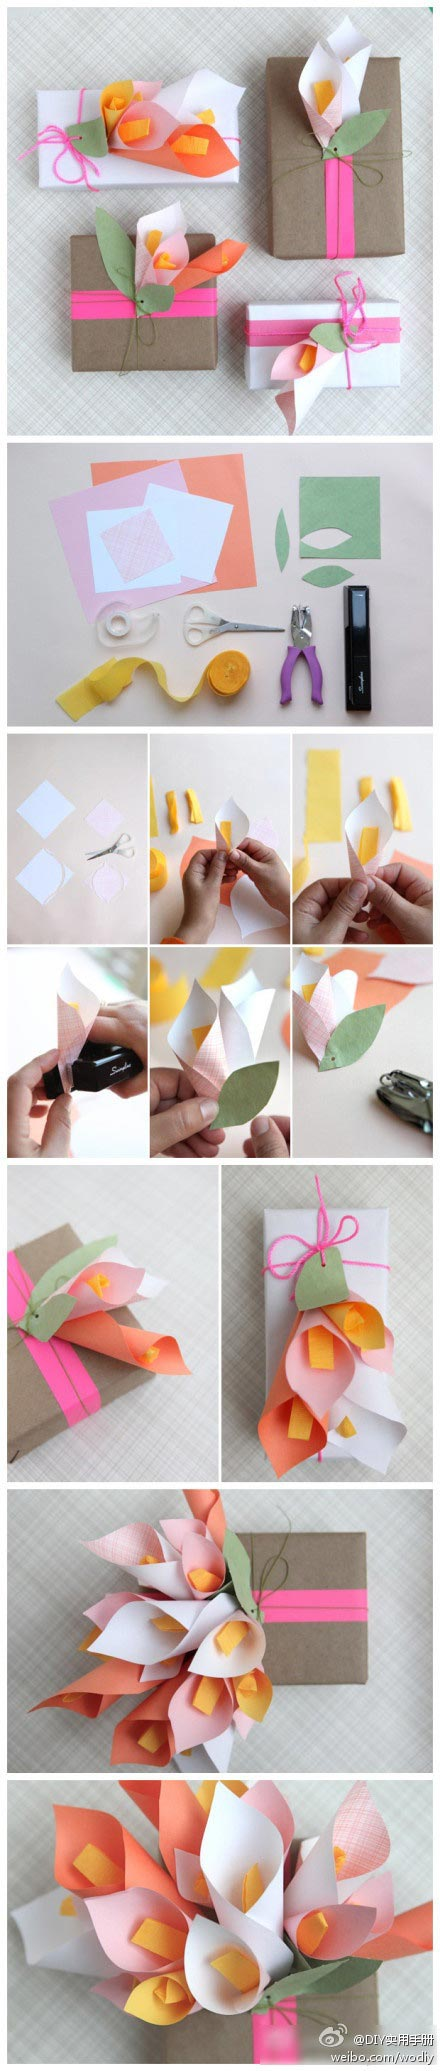 Ideas para decorar regalos con flores